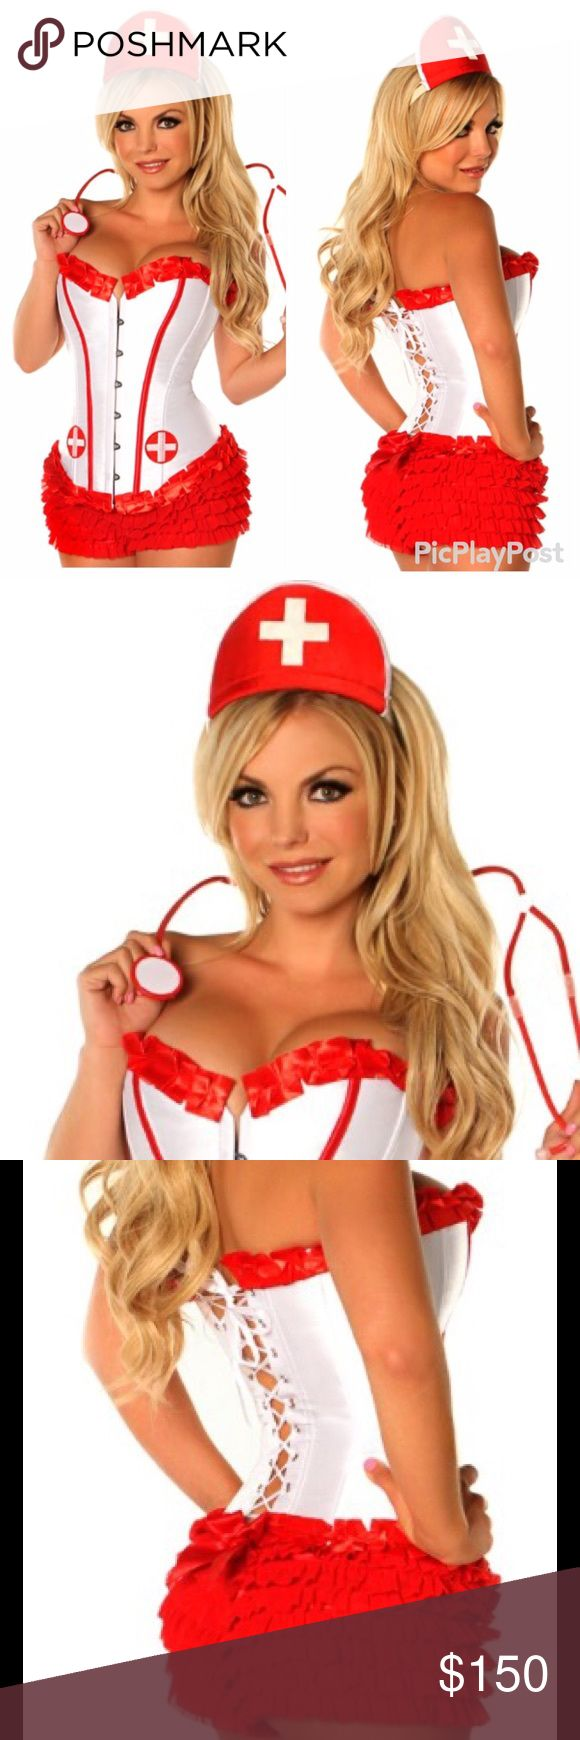 Sexy Nurse Costume Costume includes strapless corset with front busk closure, lace-up back for cinching and matching thong, Nurse Hat, Nurse Stethescope, Red Ruffle Panty. Ships within 1-2 business days Fashion Boutique  Other